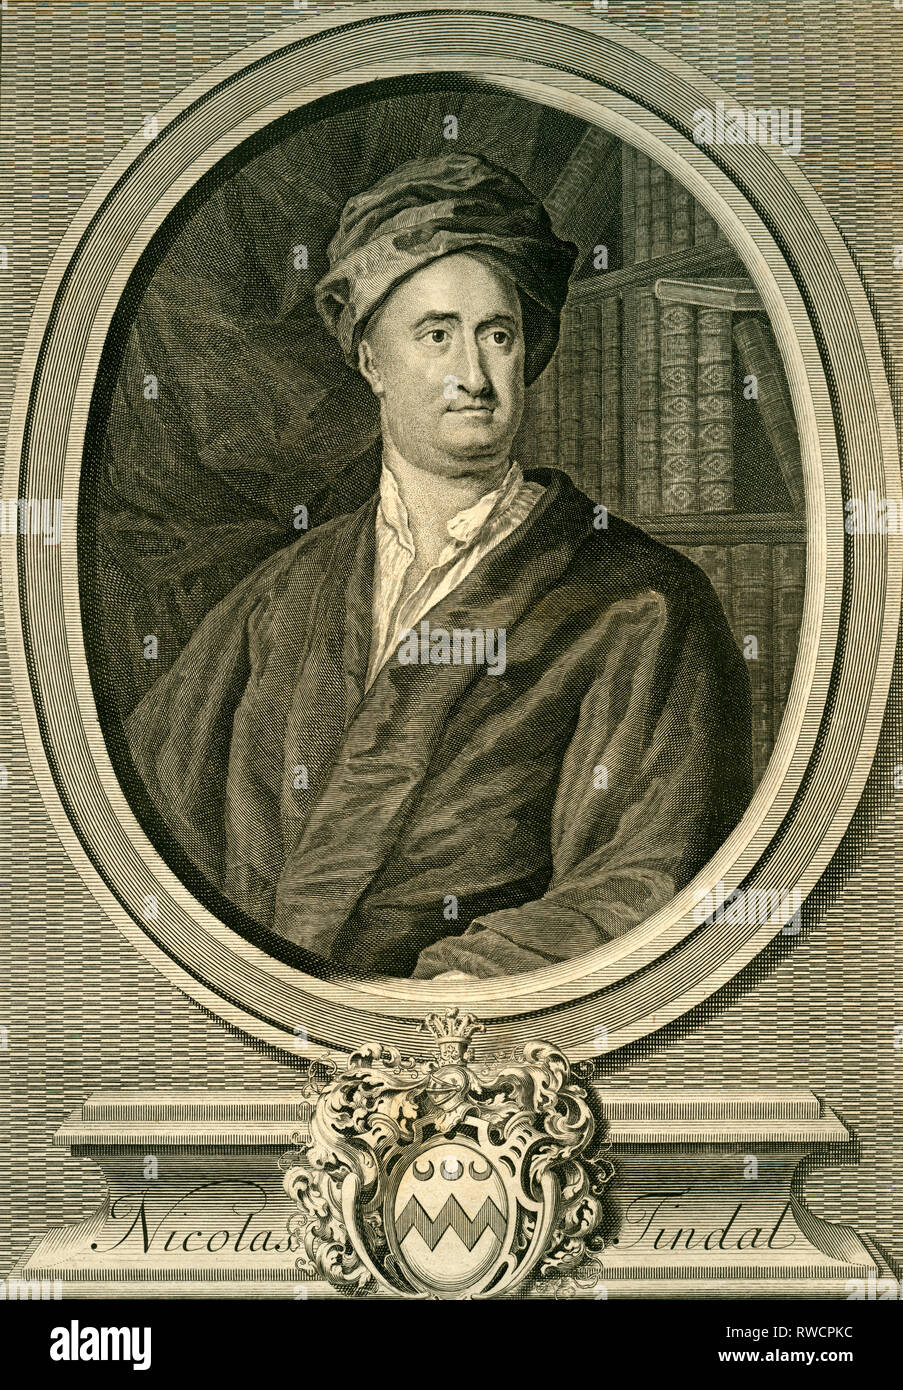 British translater and historian (history of England), copperplate engraving after Knapton, around 1735., Artist's Copyright has not to be cleared - Stock Image